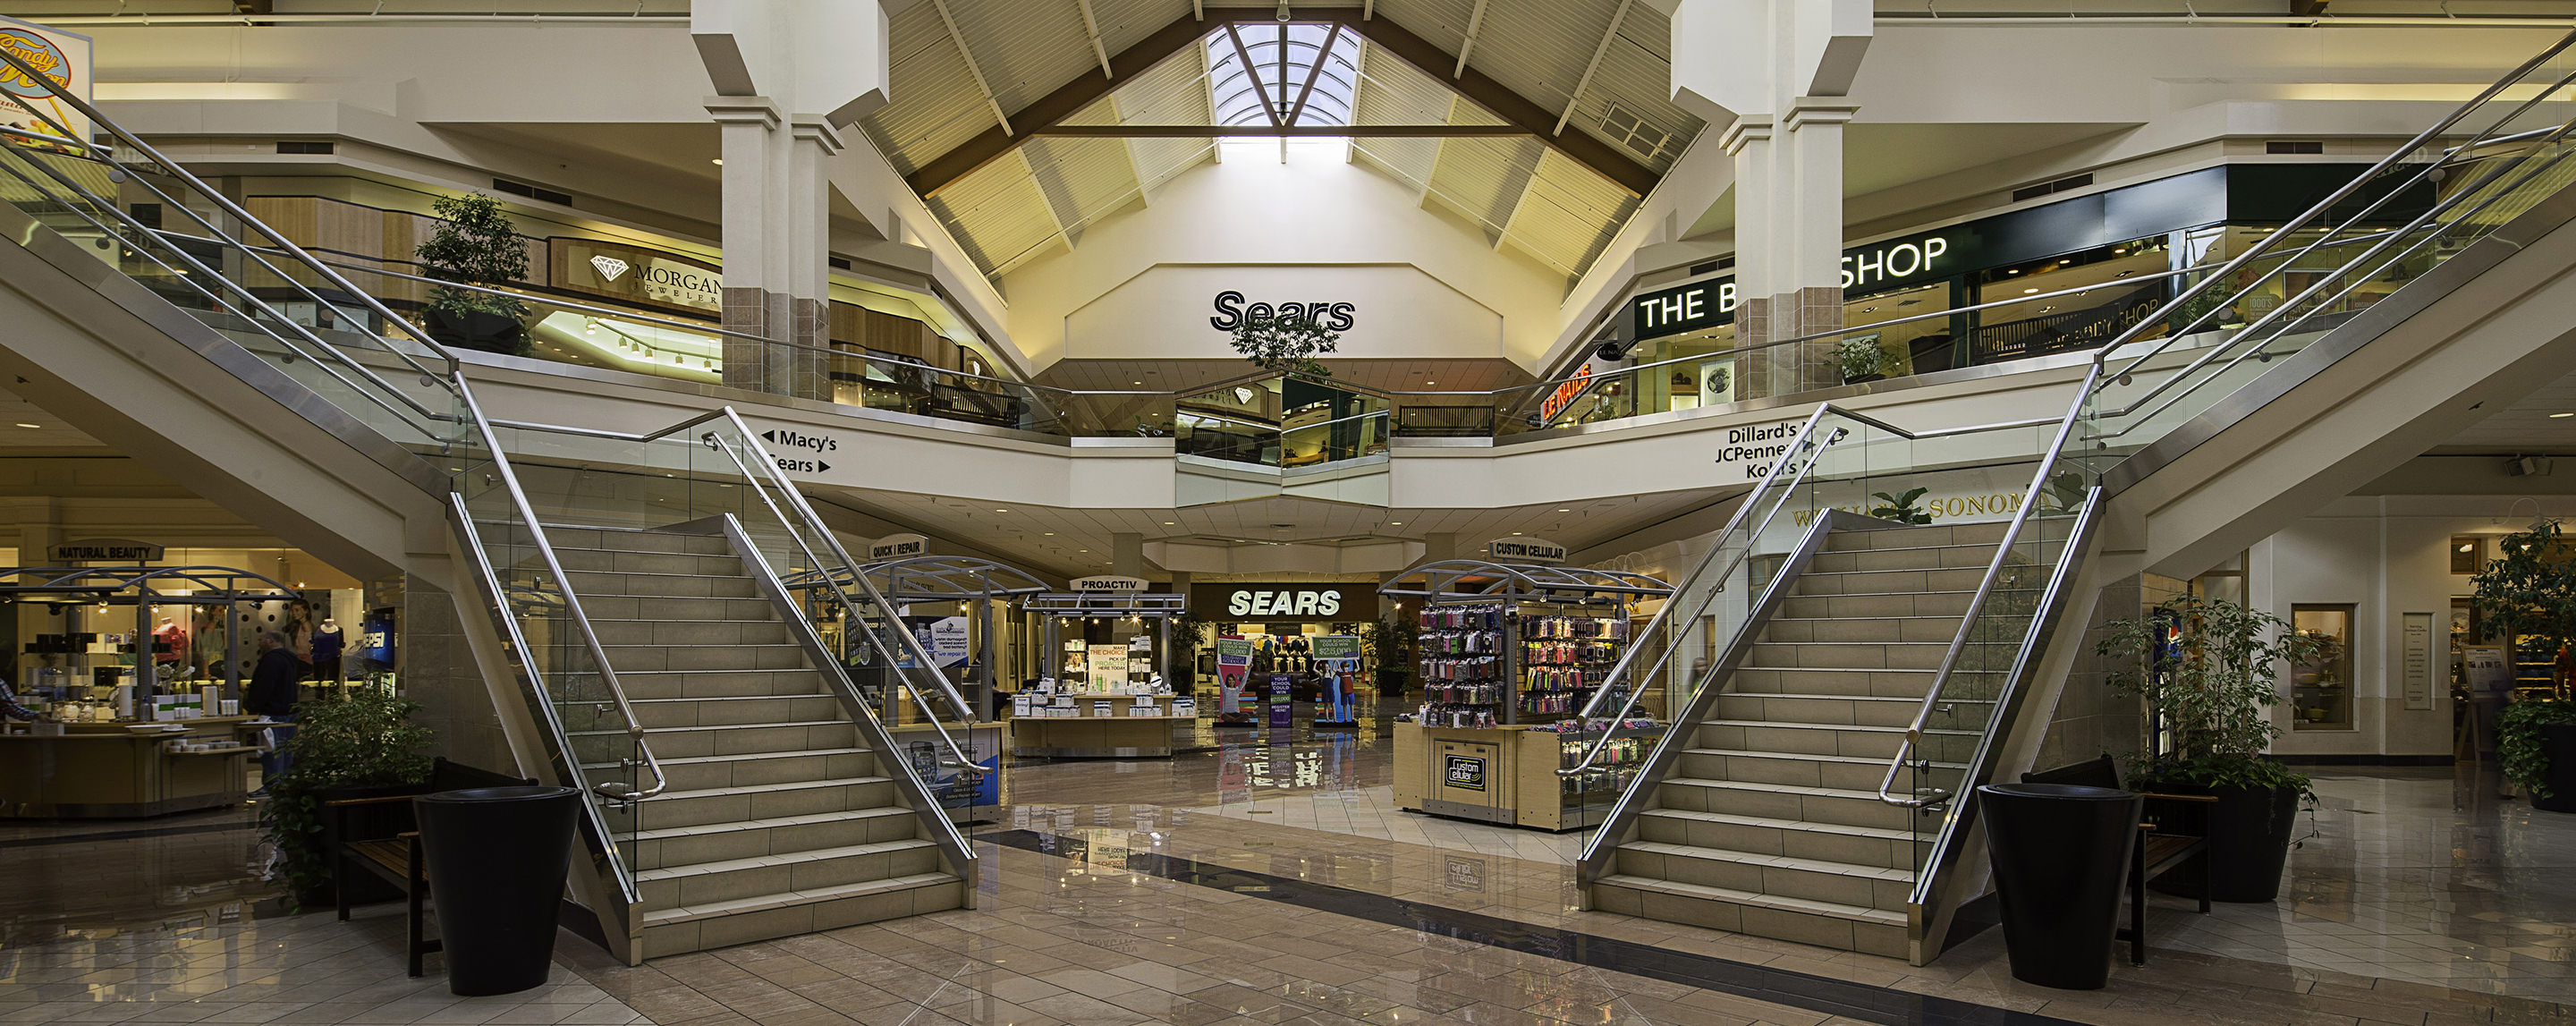 In a Boise Town Square atrium and common area, you see staircases, benches, kiosks, and store fronts.